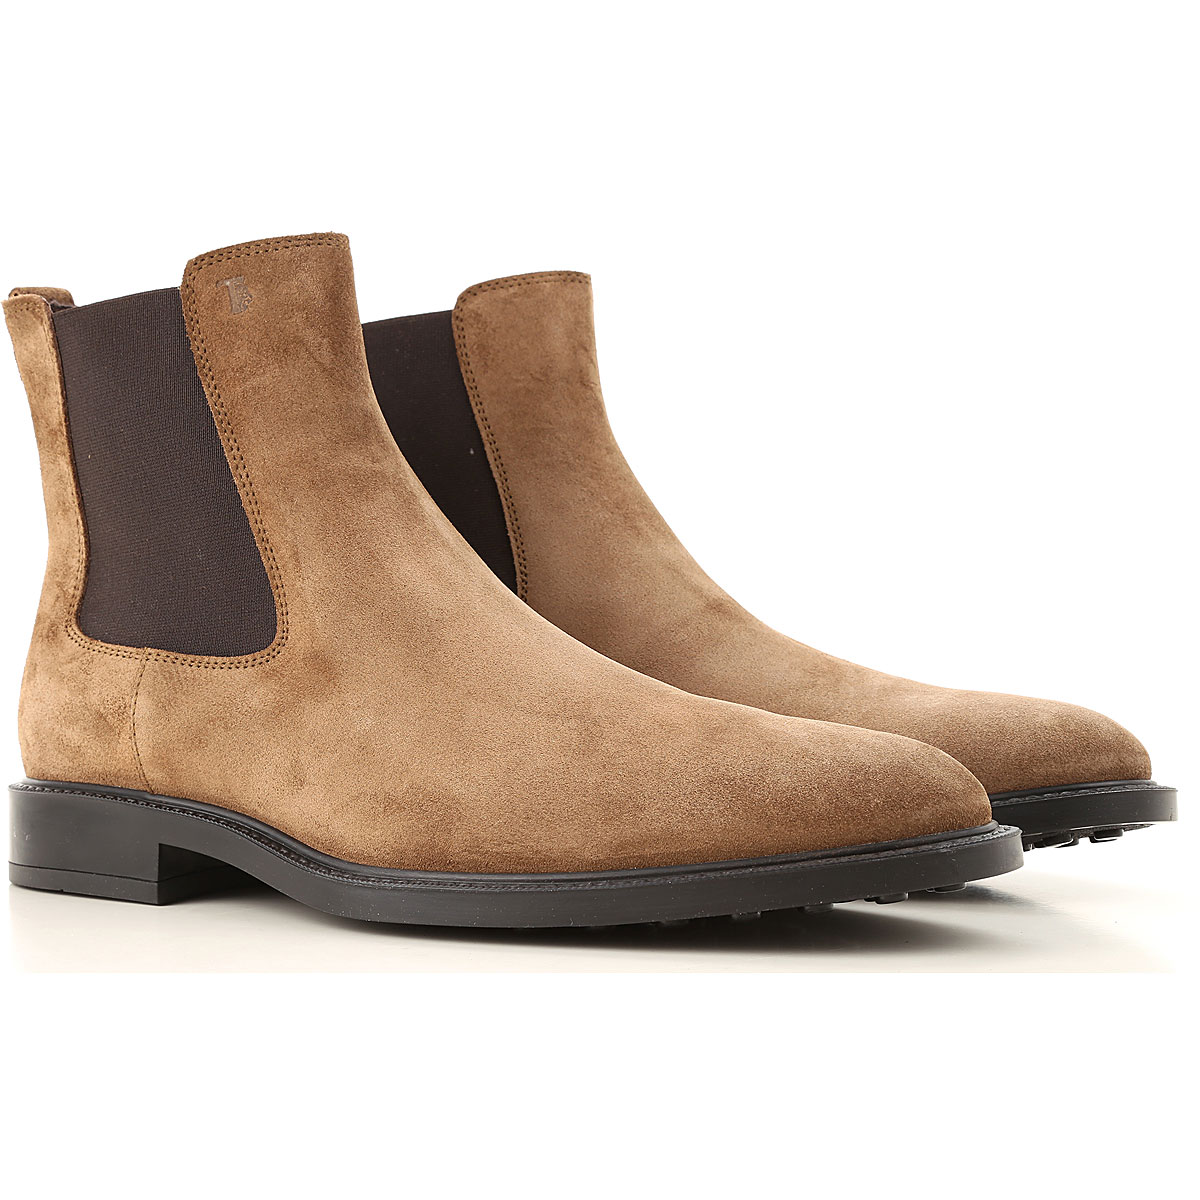 Tods Boots for Men, Booties On Sale, Nut Brown, suede, 2019, 10.5 11 9.5